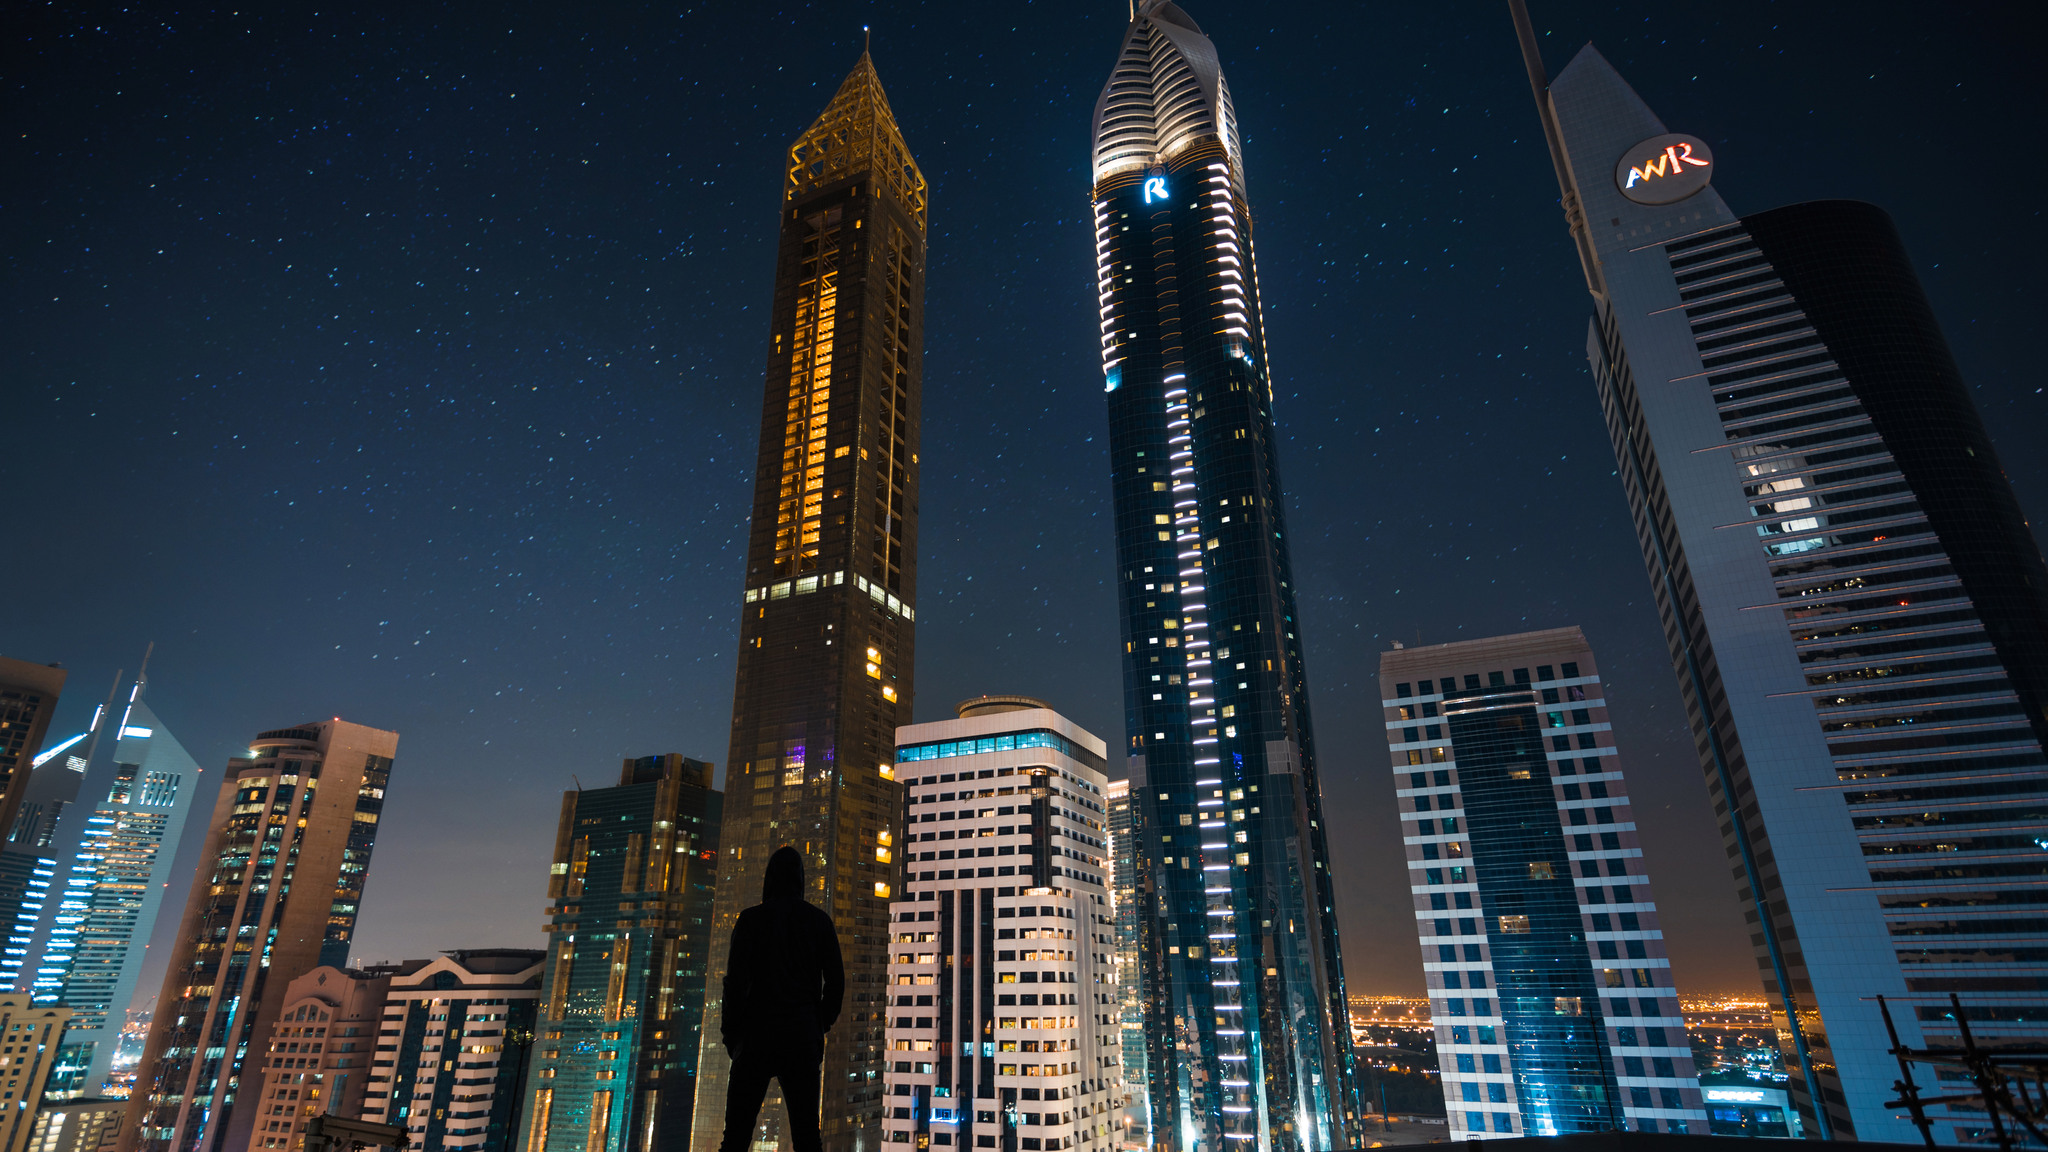 2048x1152 man standing front of tall buildings 2048x1152 resolution